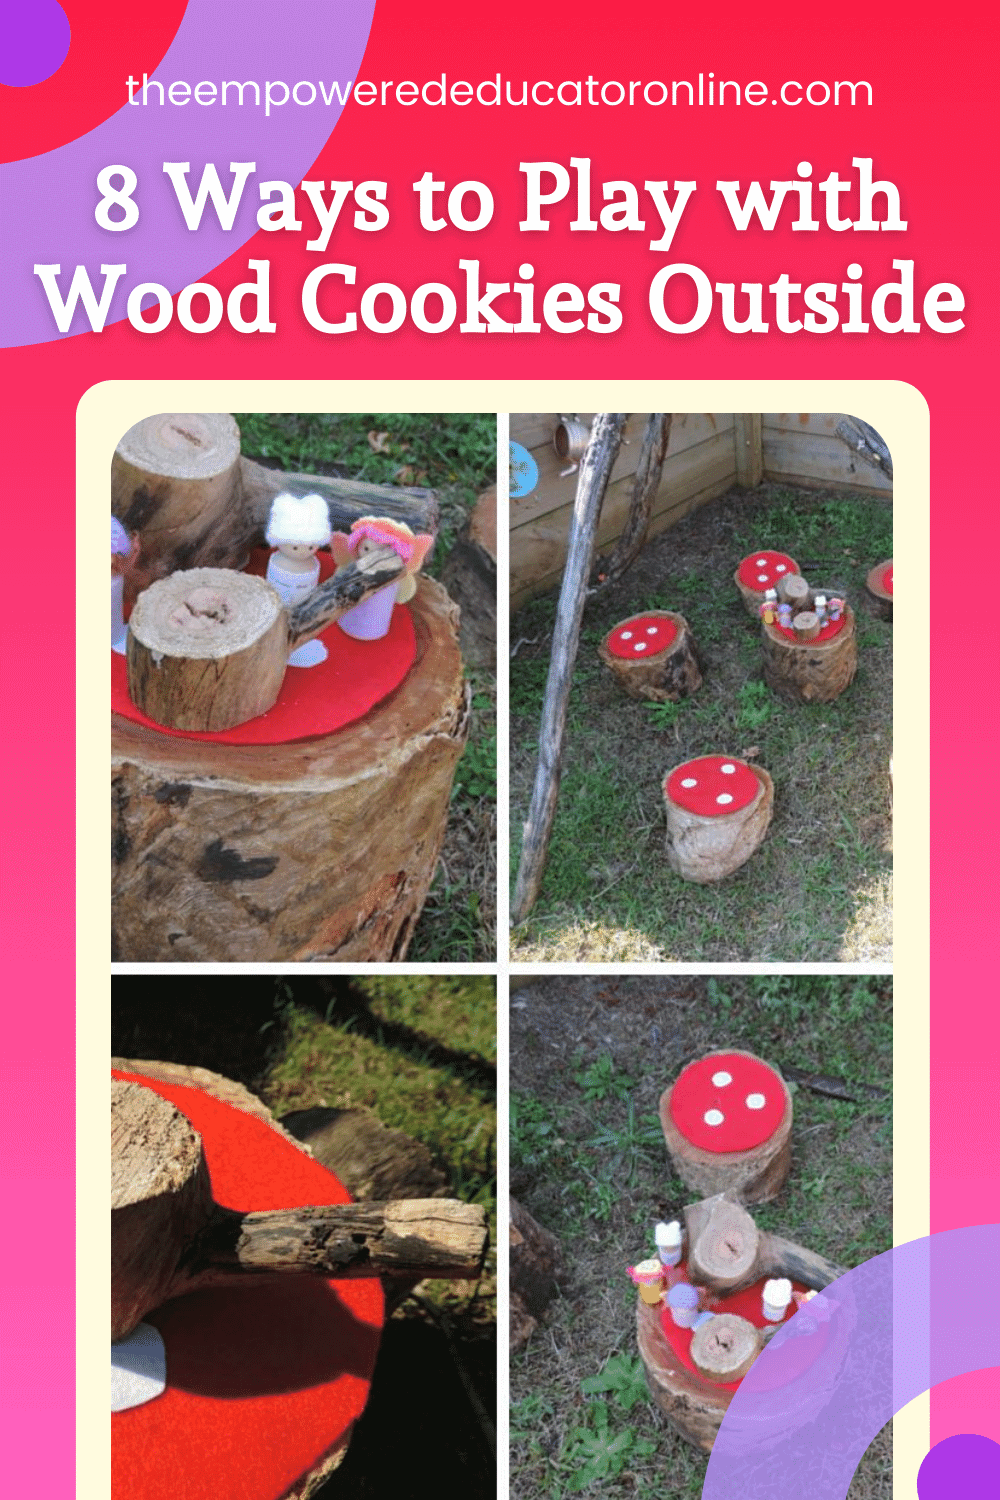 8 Ways to Play with Wood Cookies Outside